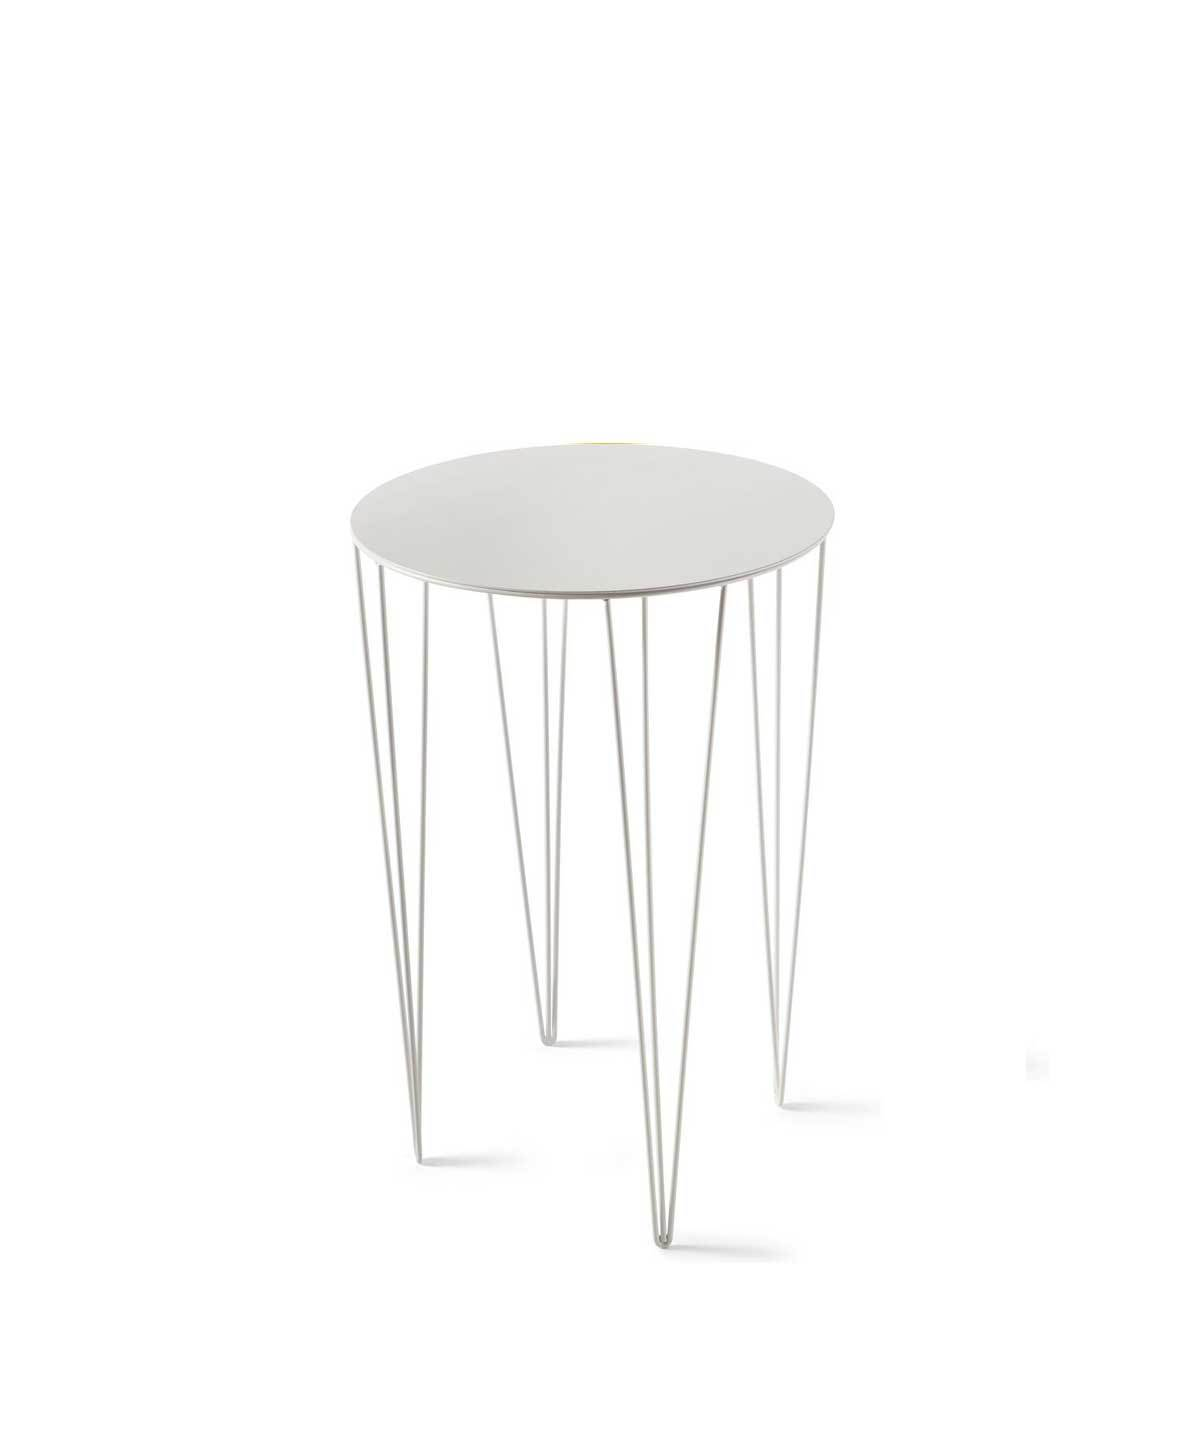 Chele Round Tables